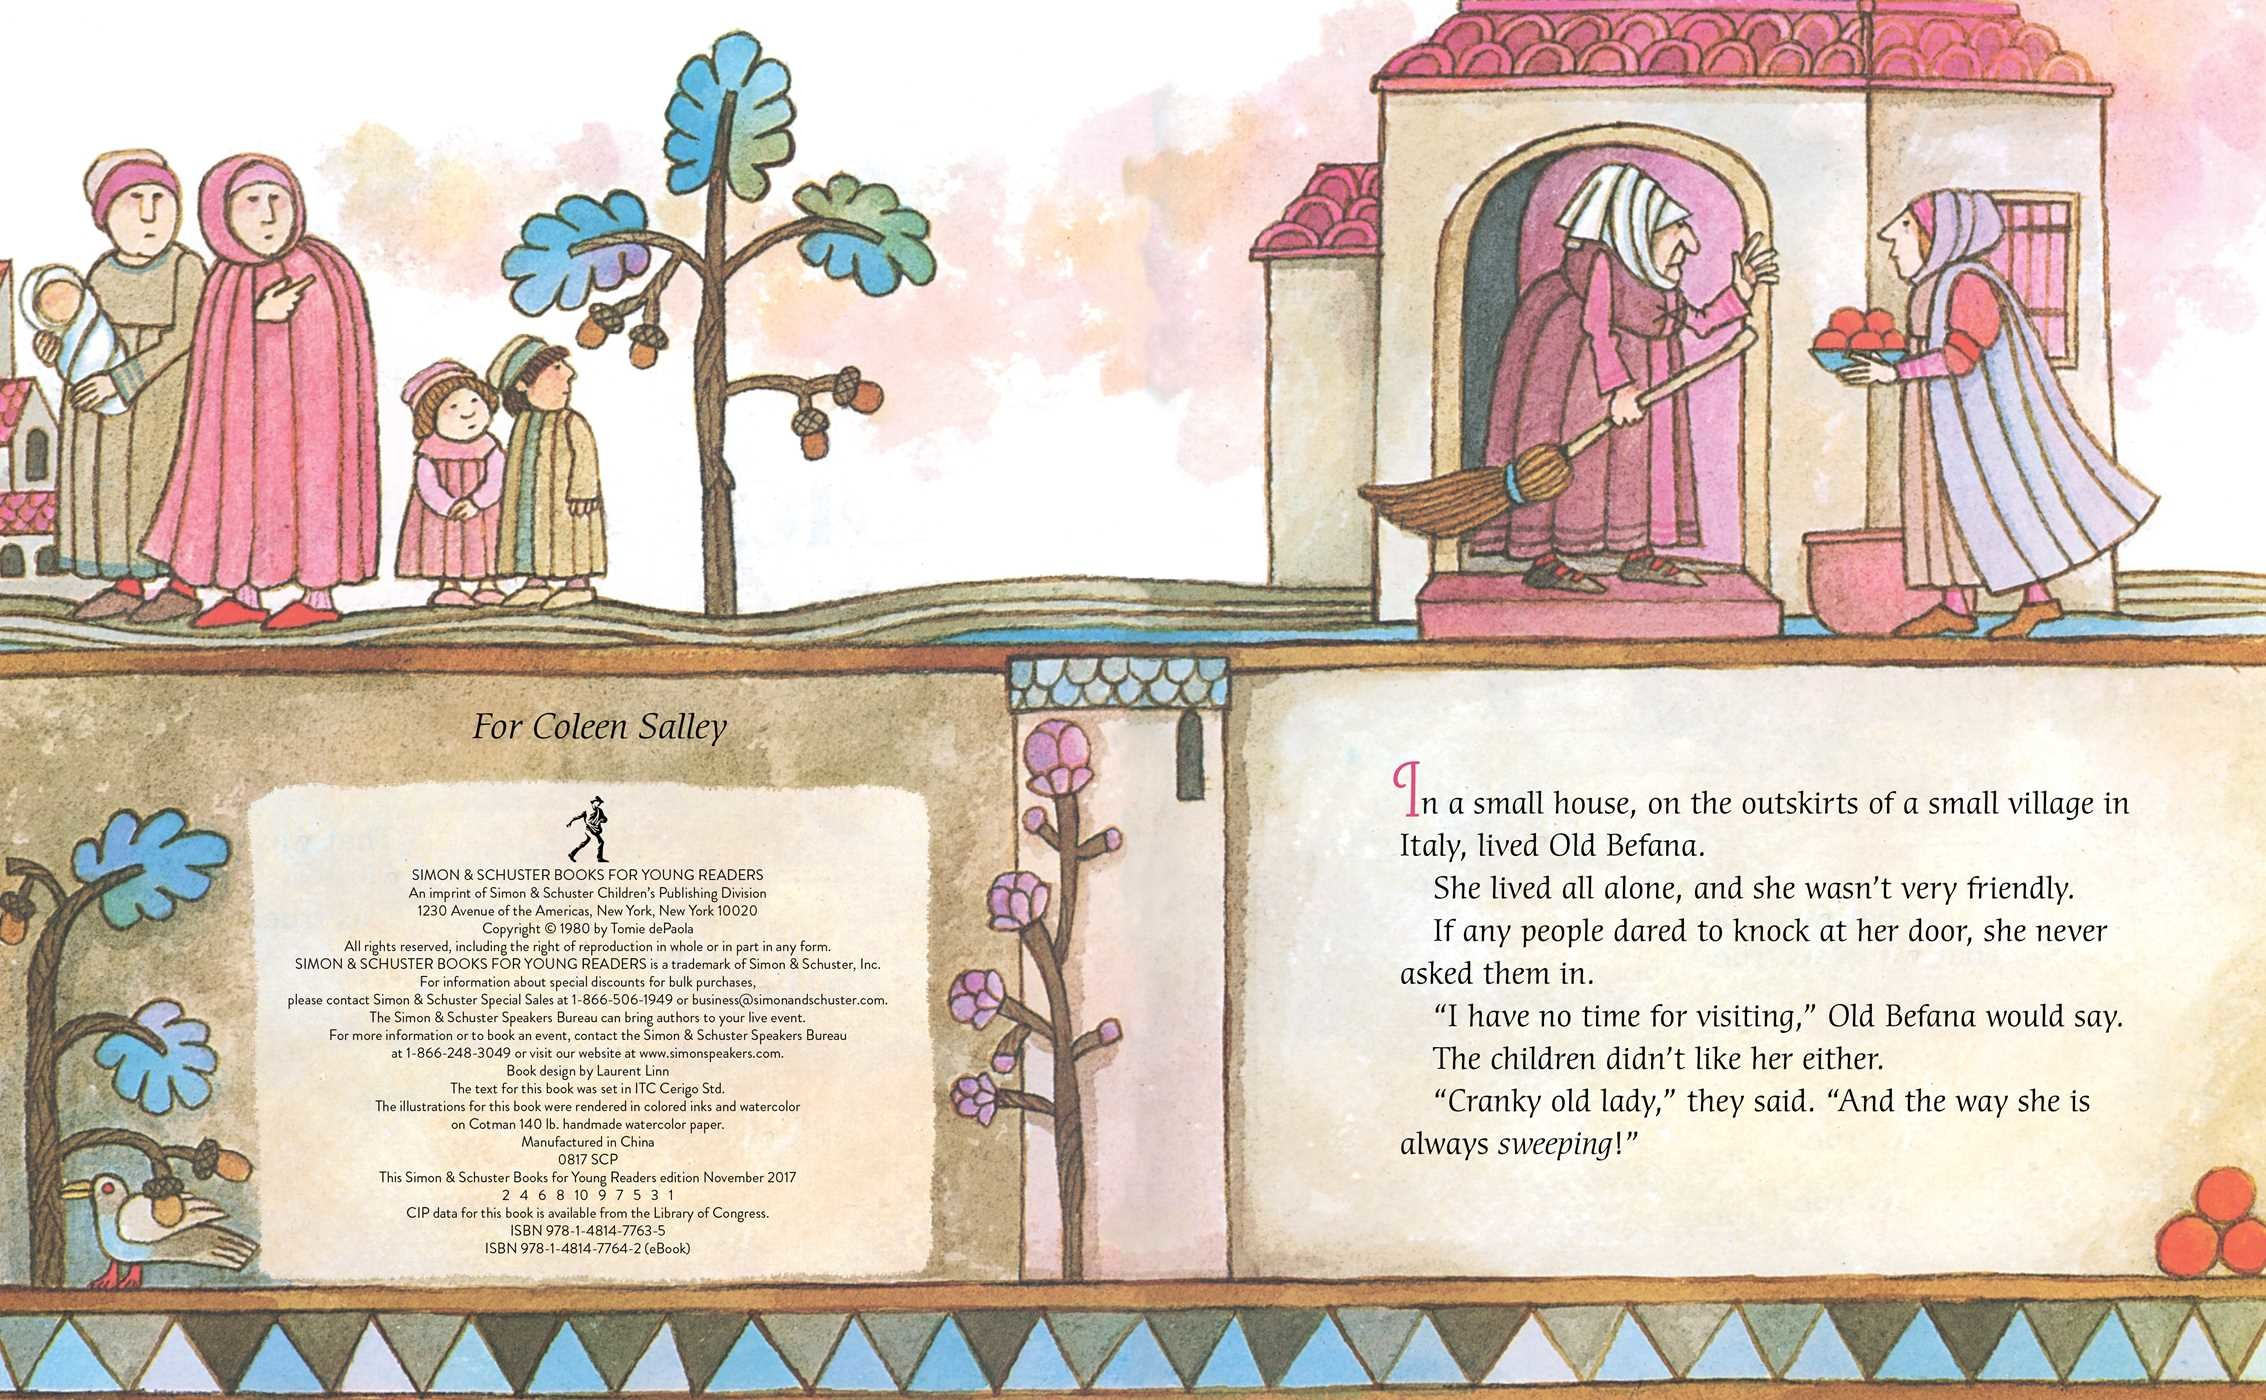 The legend of old befana 9781481477635.in01